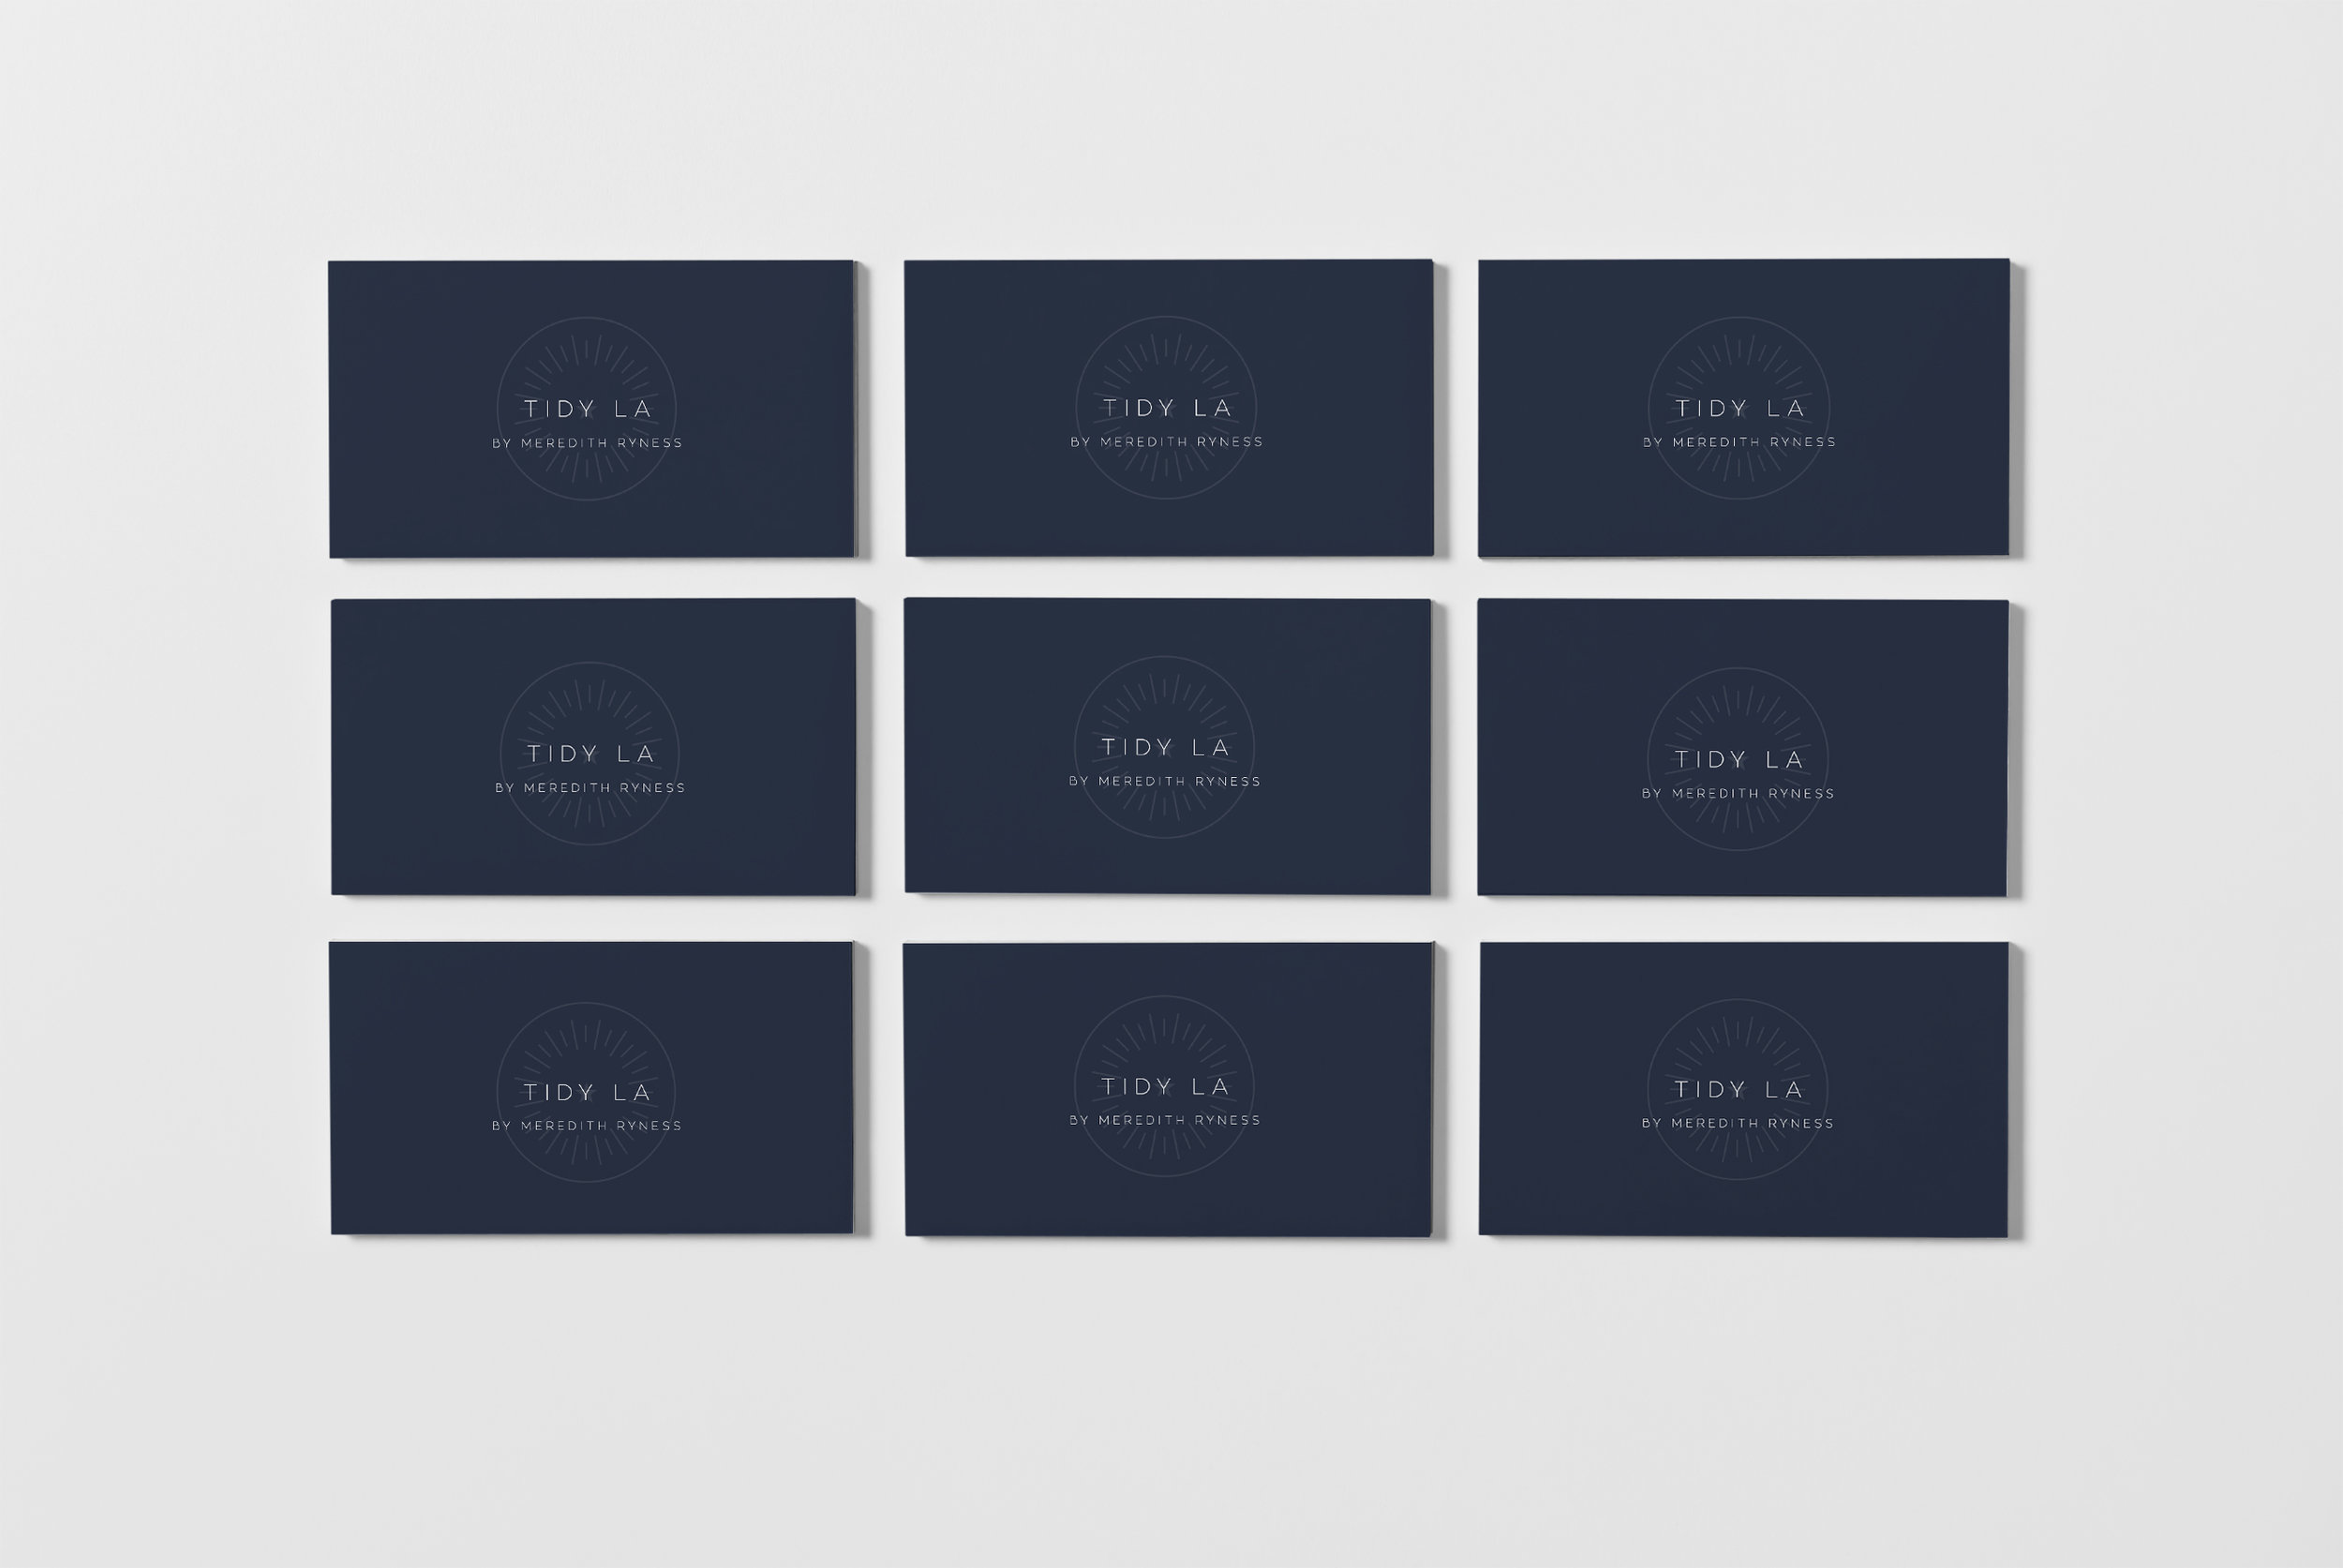 05 CANOPY_Tidy LA by Meredith Ryness_Business Card Design_Front.jpg